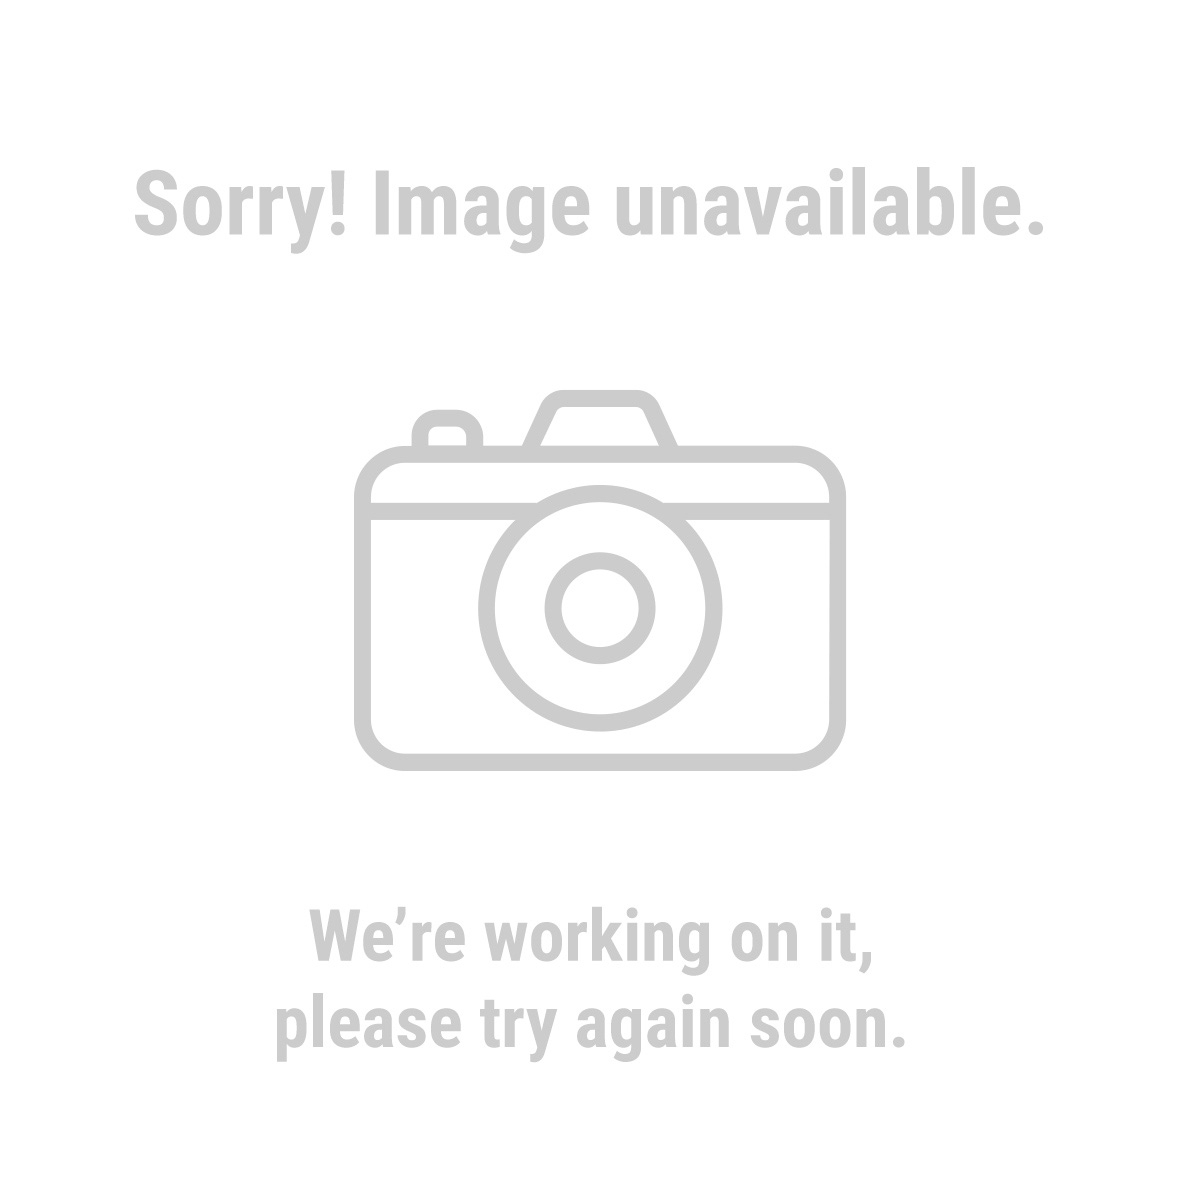 Predator Engines 69727 6.5 HP (212cc) OHV Horizontal Shaft Gas Engine EPA/CARB